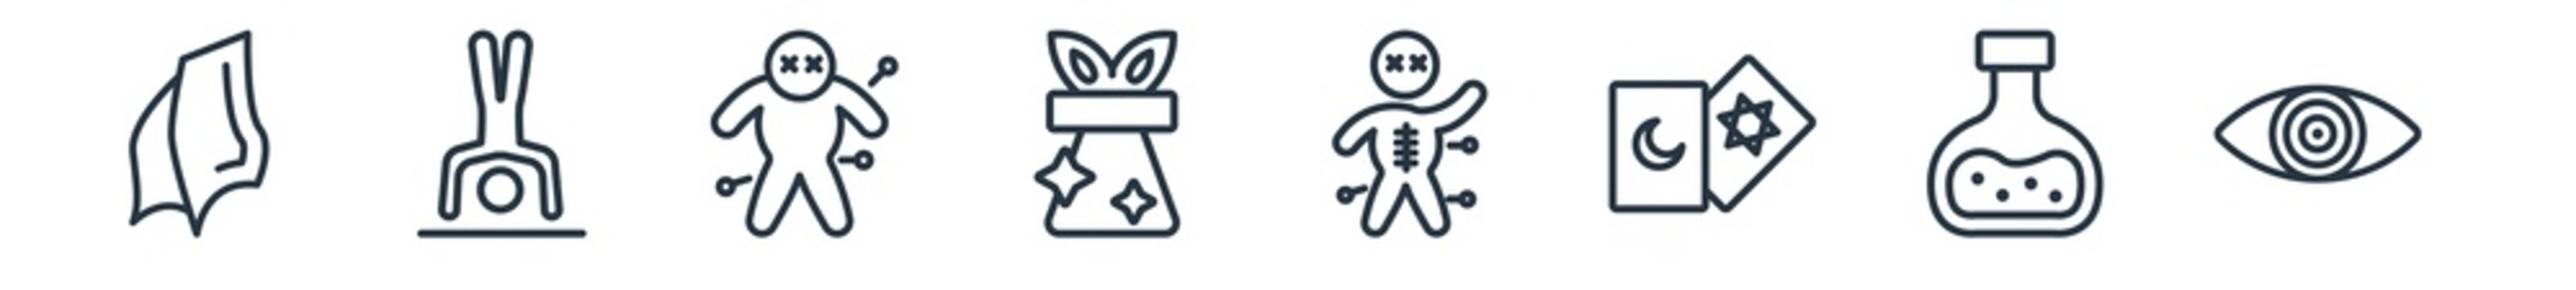 linear set of magic outline icons. line vector icons such as handkerchief, acrobatic, voodoo doll, magic trick, voodoo, hypnosis vector illustration.